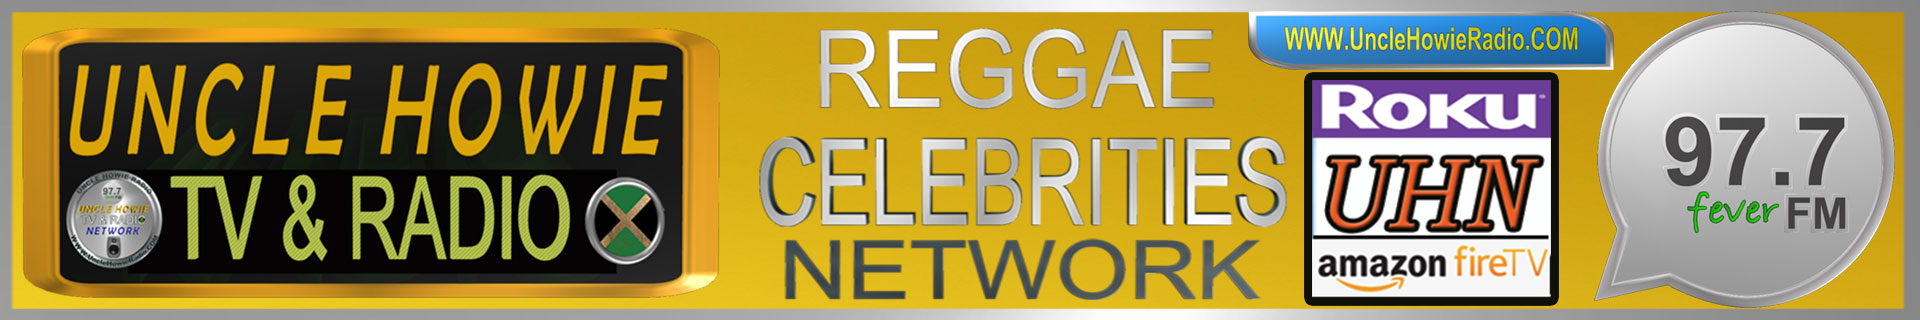 Uncle Howie Reggae Town - Celebrities Network - Roku Fire Stick